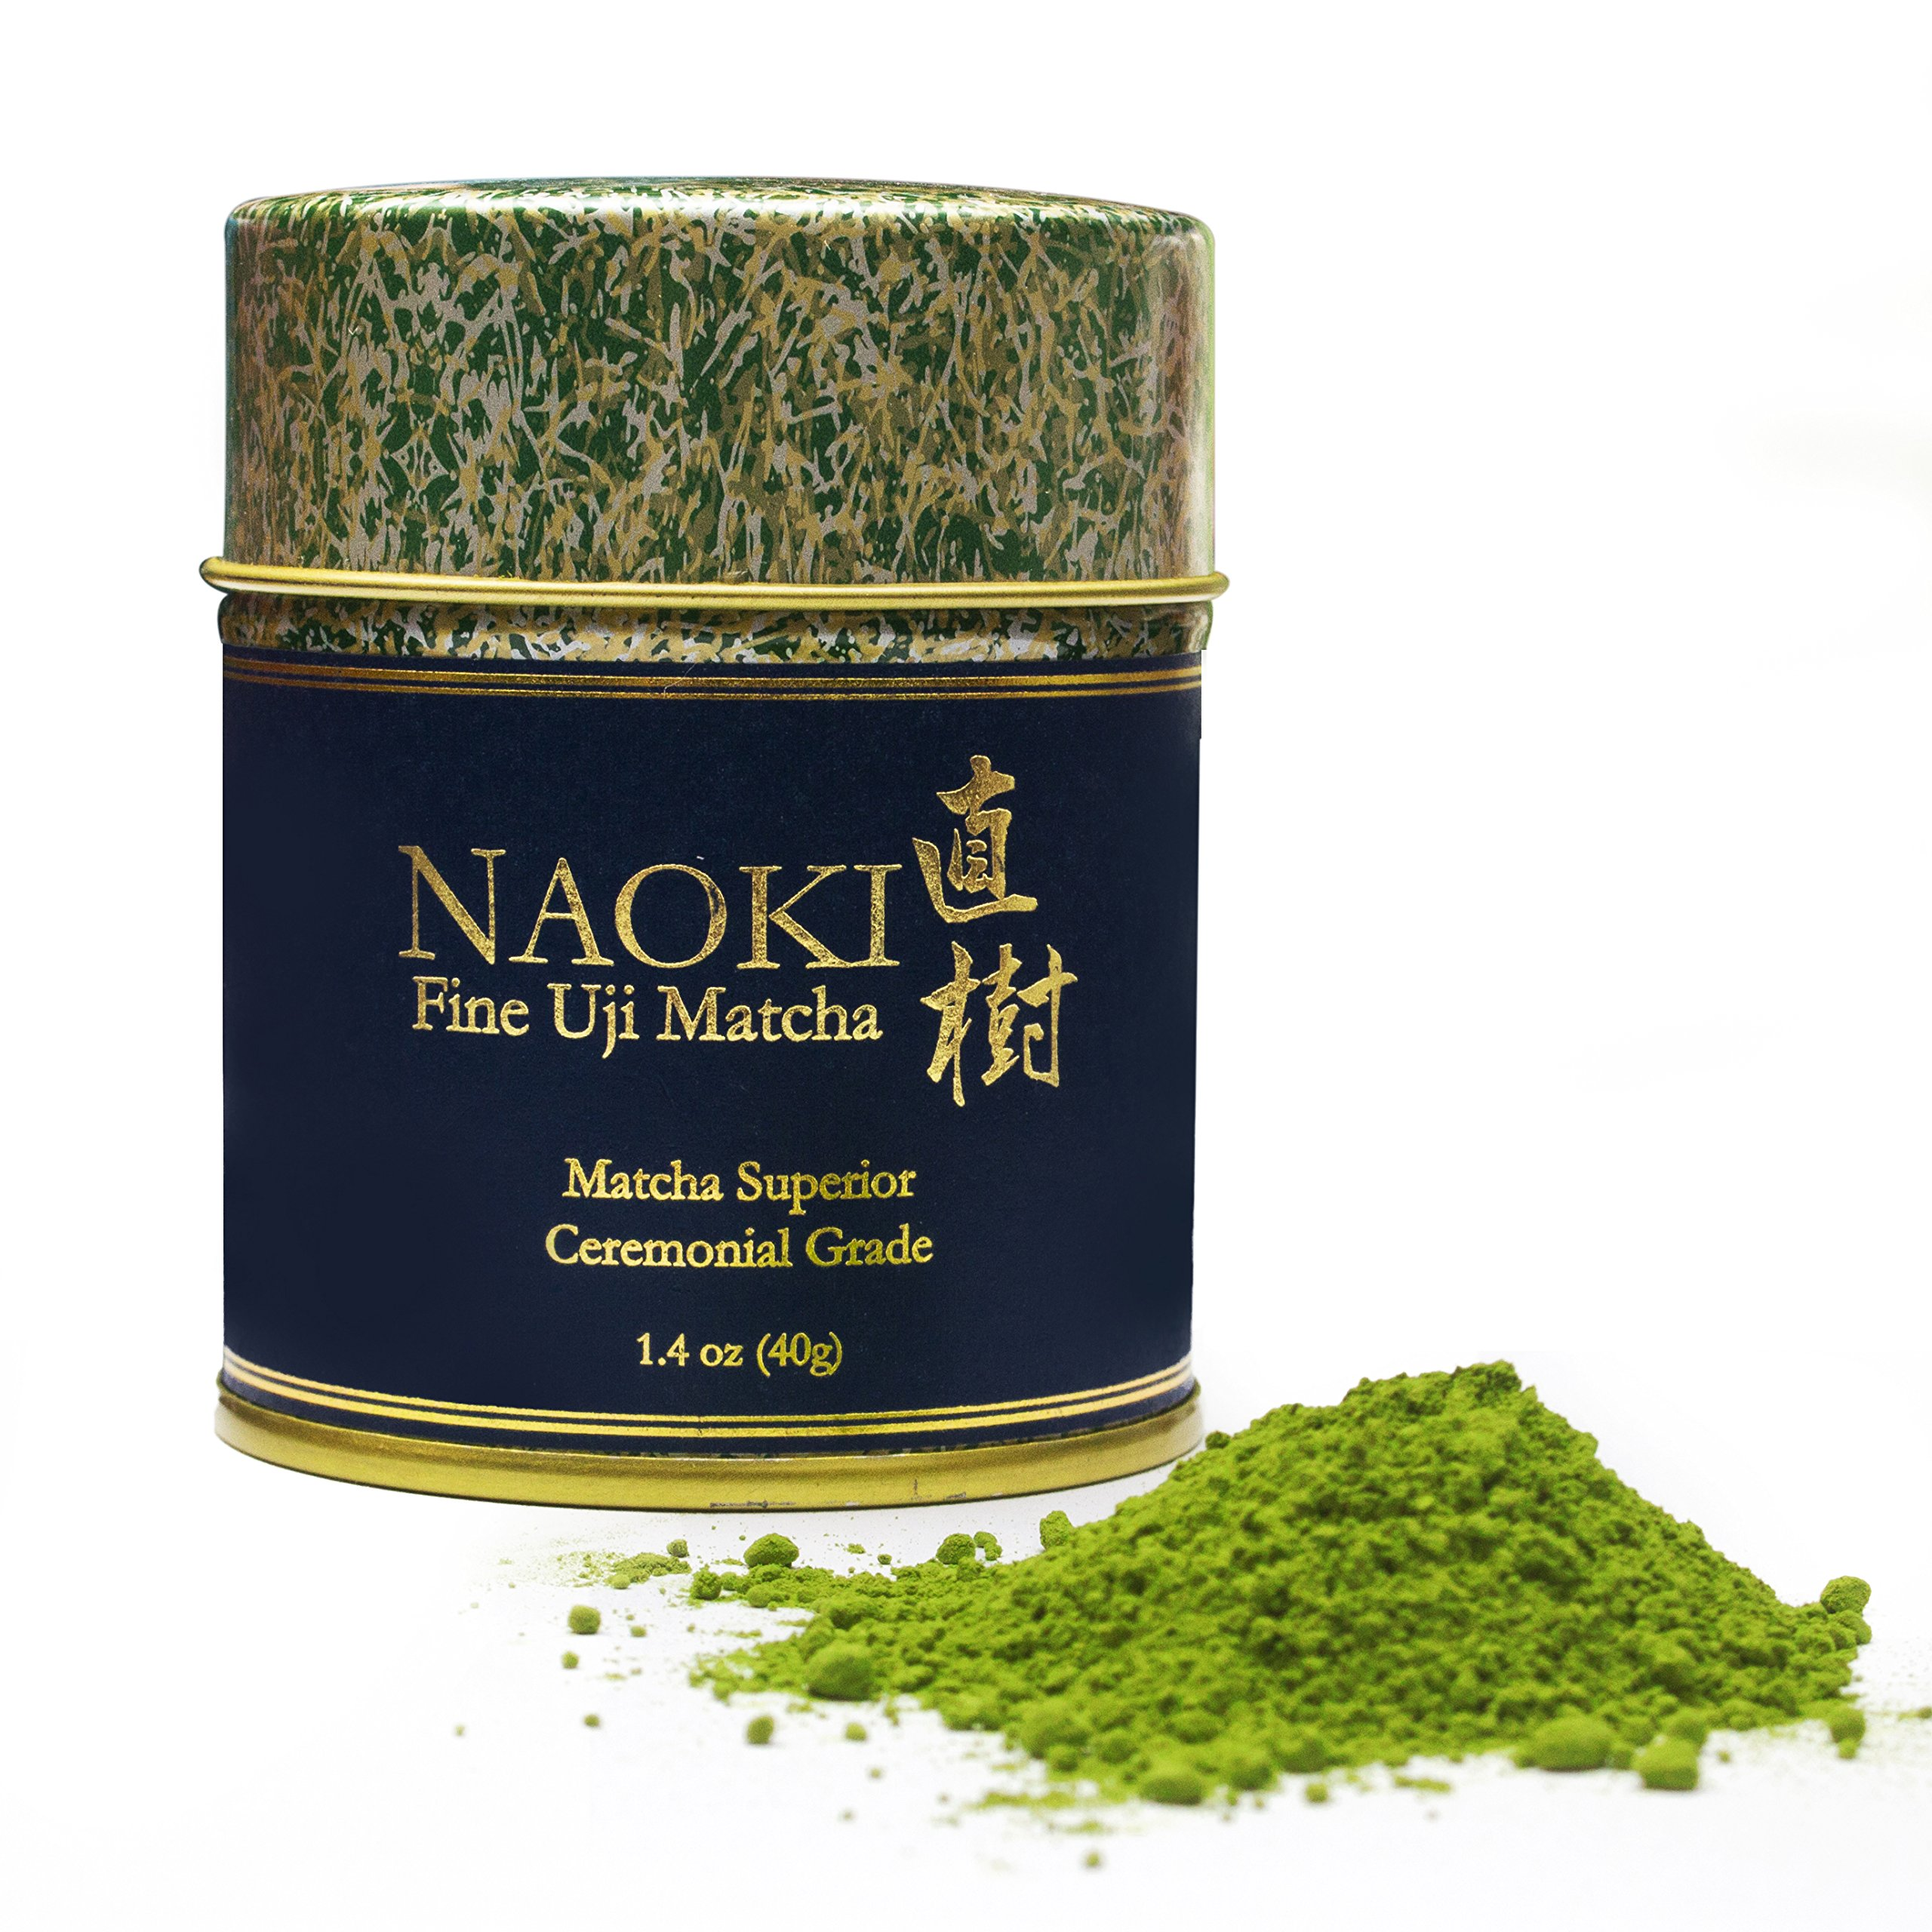 Authentic Naoki Matcha Green Tea Powder Superior Ceremonial Grade - Japanese 40g (1.4oz) - Experience and Gift The True Essence of Japanese Uji Matcha, Perfect for Restoring Focus, Vitality and Health